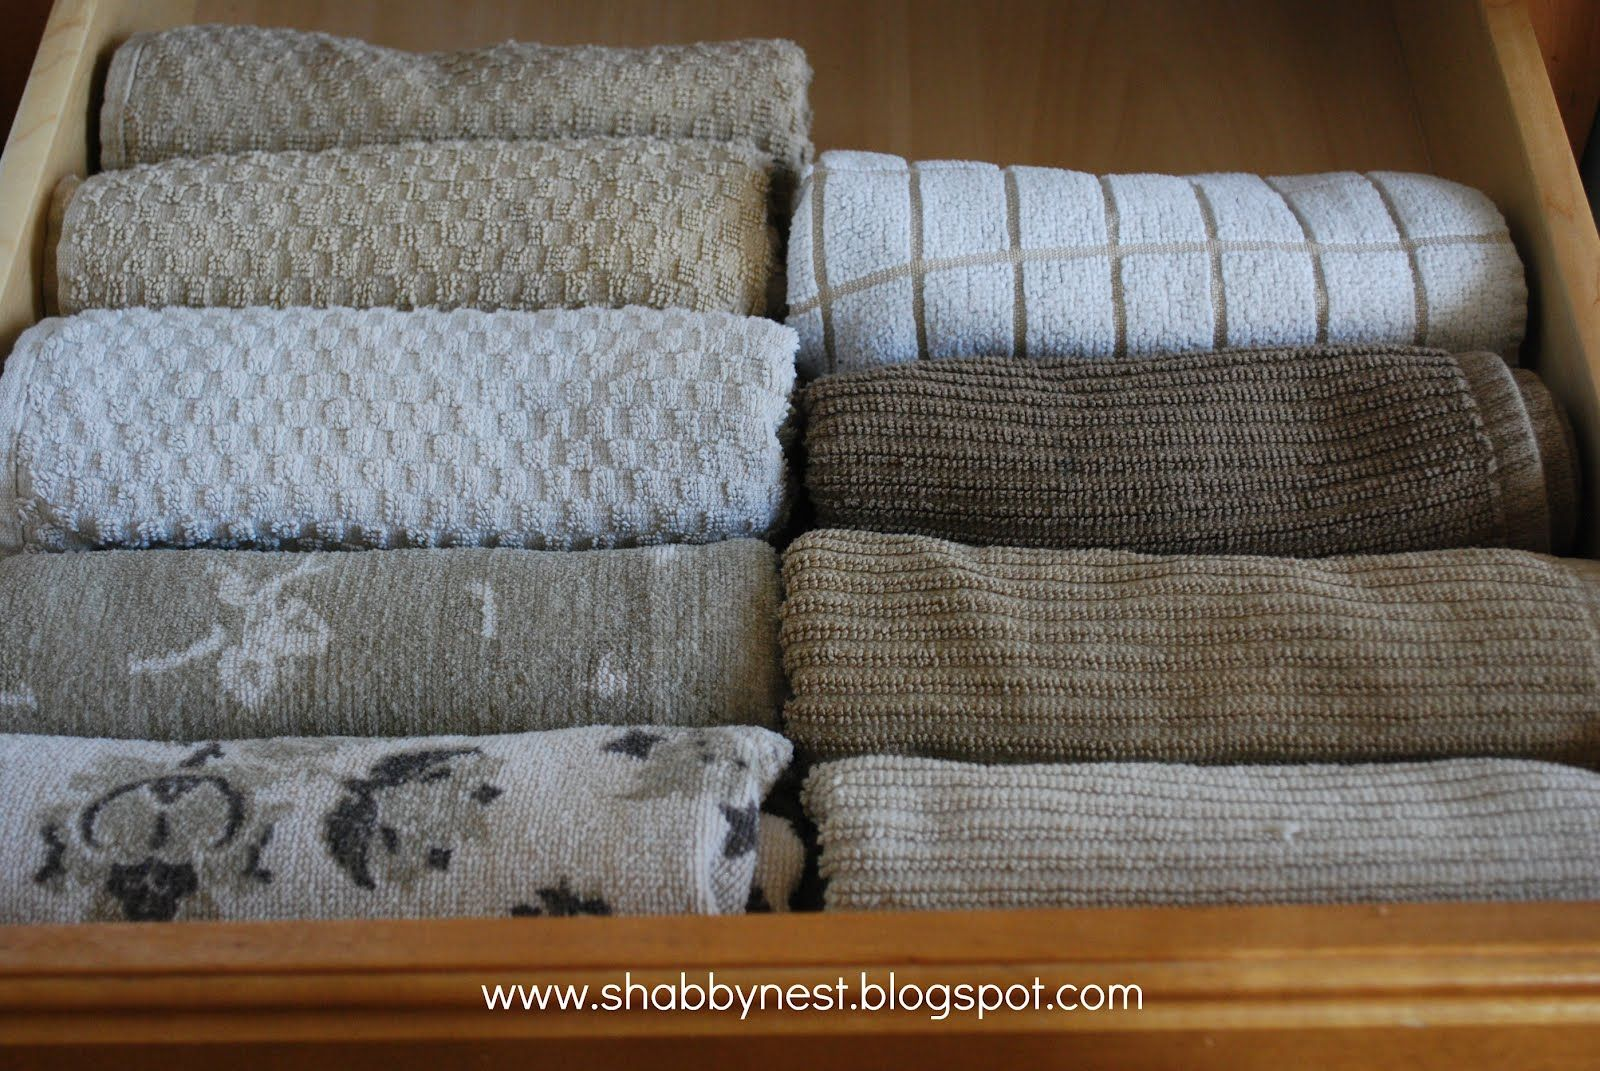 The Best Way To Kitchen Towels I Had A Professional Organizer Teach Me Do This With Everything Shirts Shorts Etc